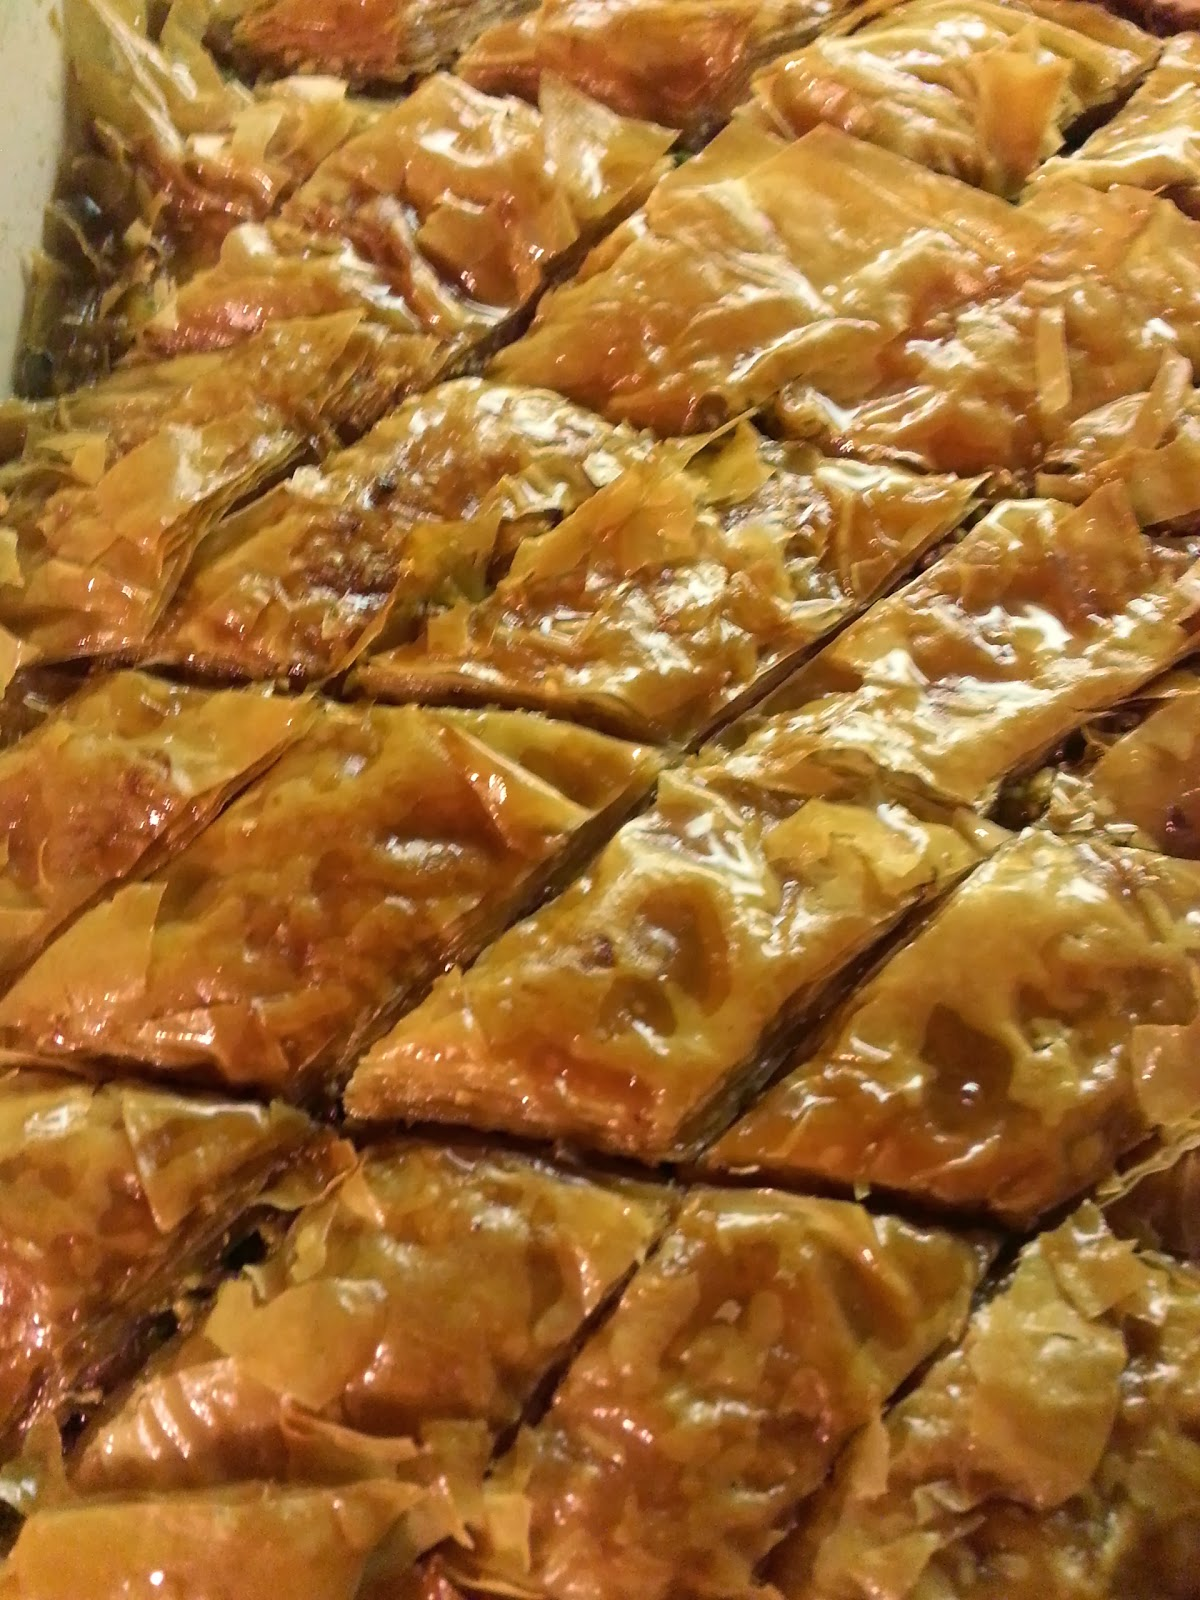 ... Fit For a Kid: Recipe: Pistachio Baklava with Orange Blossom Syrup